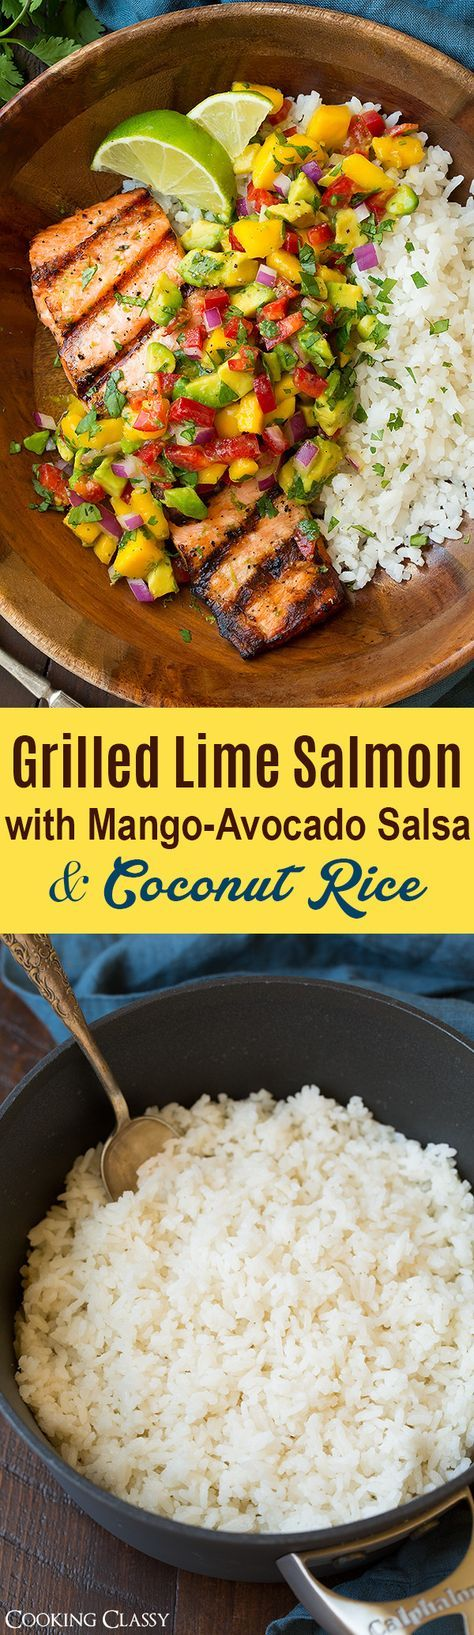 Grilled Lime Salmon with Mango-Avocado Salsa and Coconut Rice - this is the perfect summer meal! Loved everything about this!